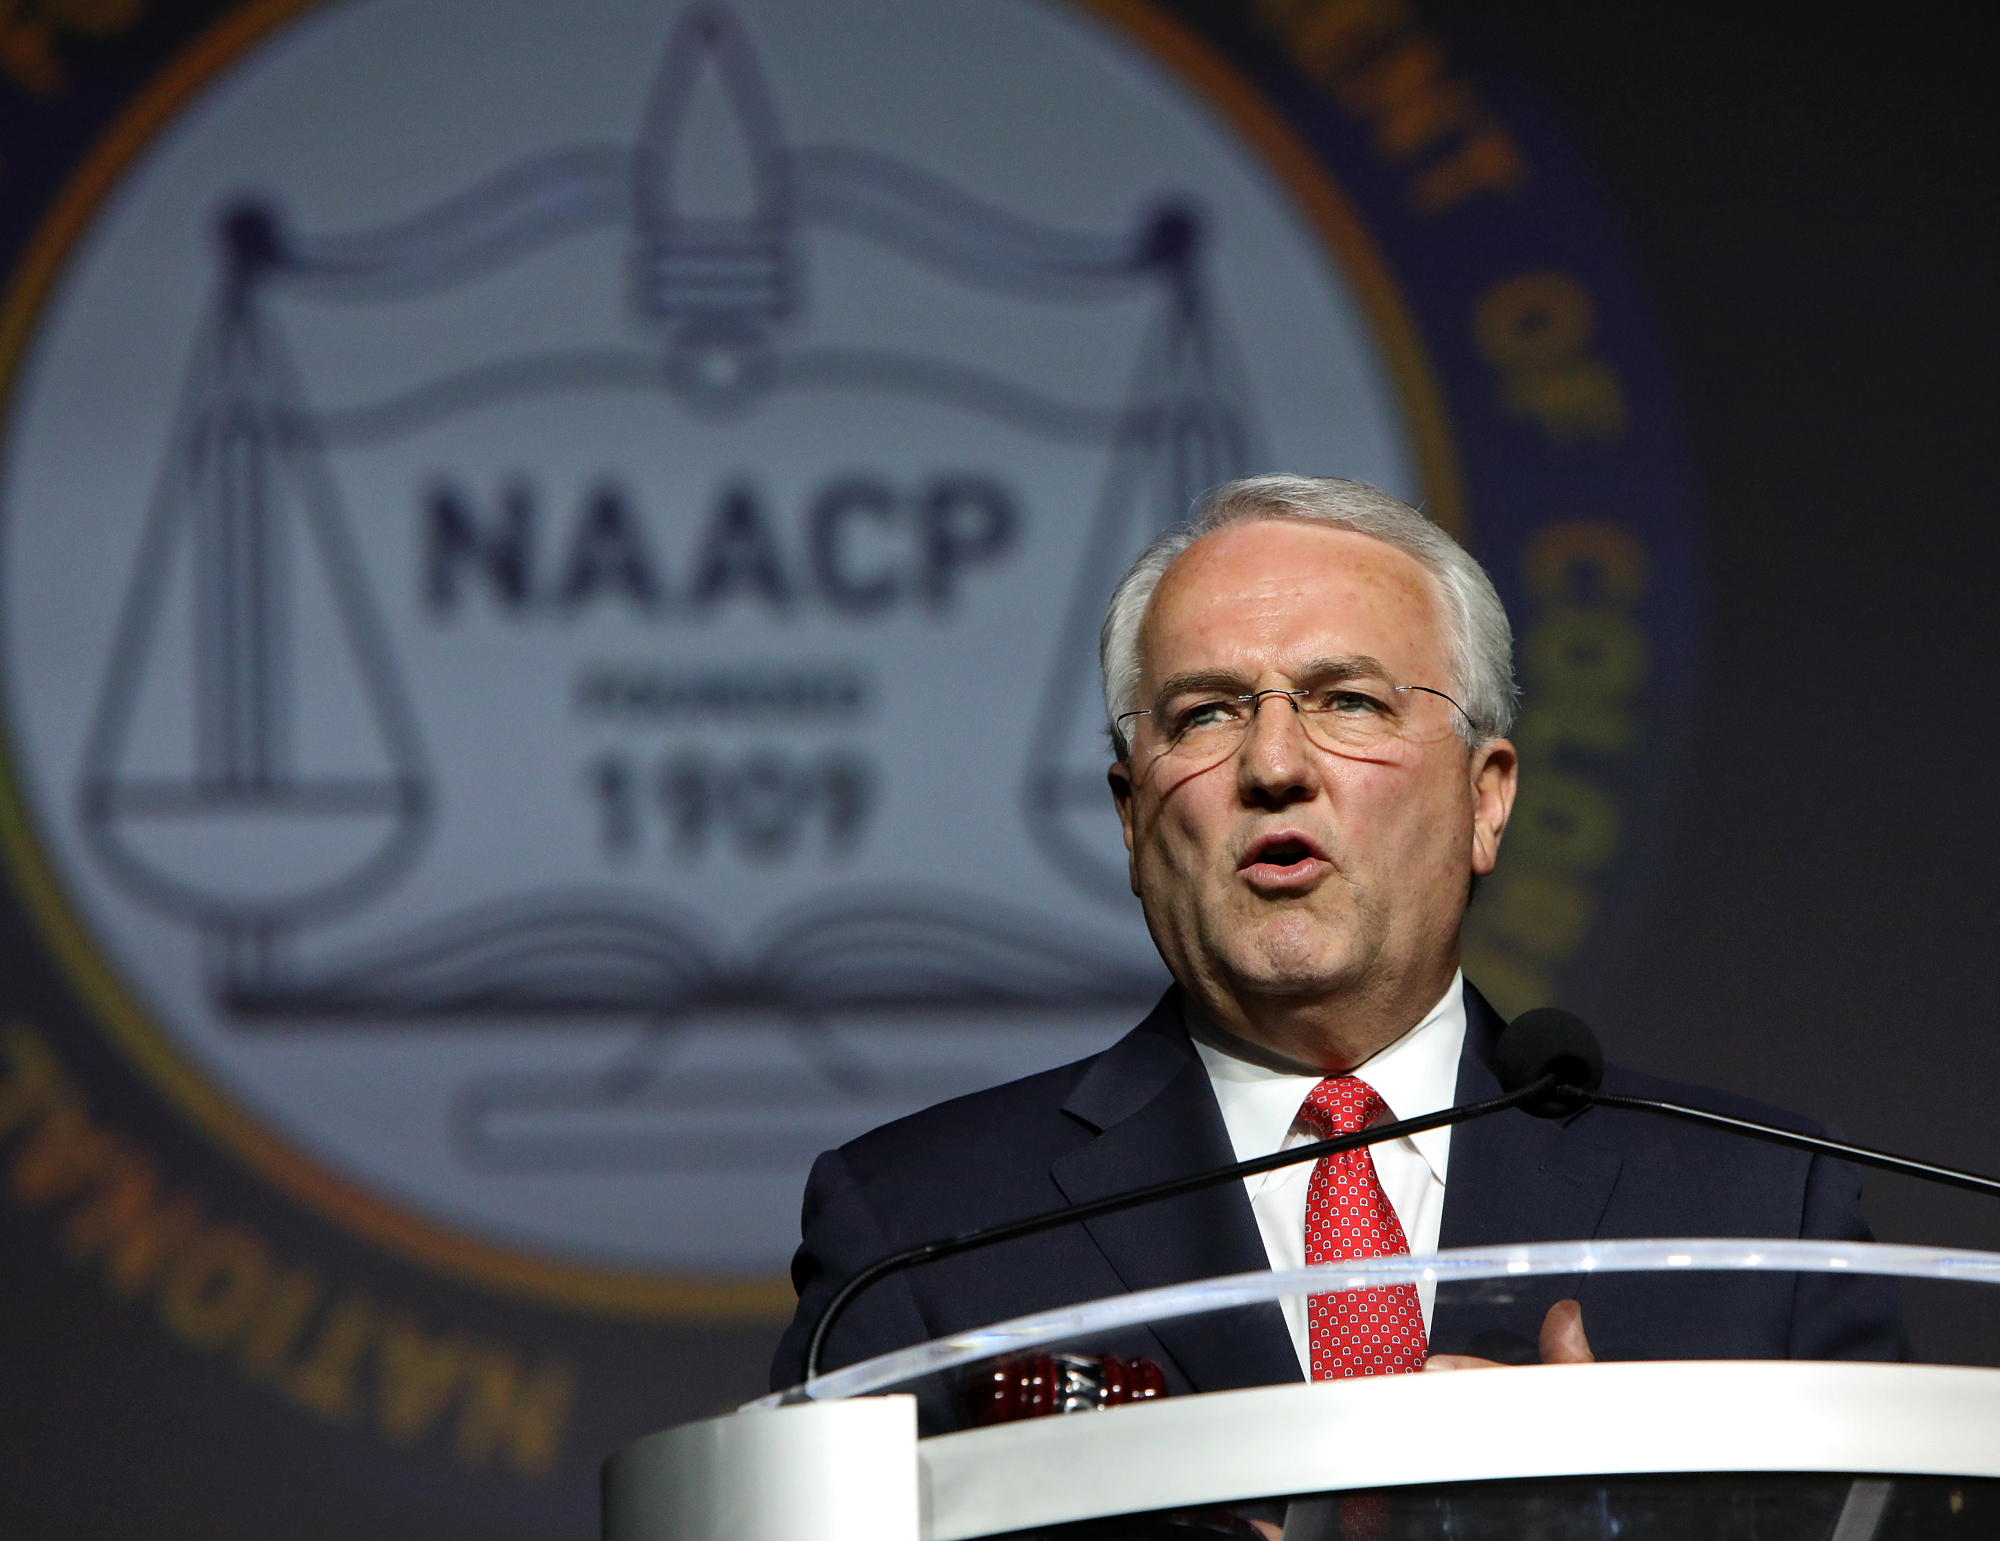 Elder Jack N. Gerard, a General Authority Seventy of The Church of Jesus Christ of Latter-day Saints, announces a new joint education initiative by the LDS Church and the NAACP at the 109th NAACP Annual Convention in San Antonio on Sunday, July 15, 2018.